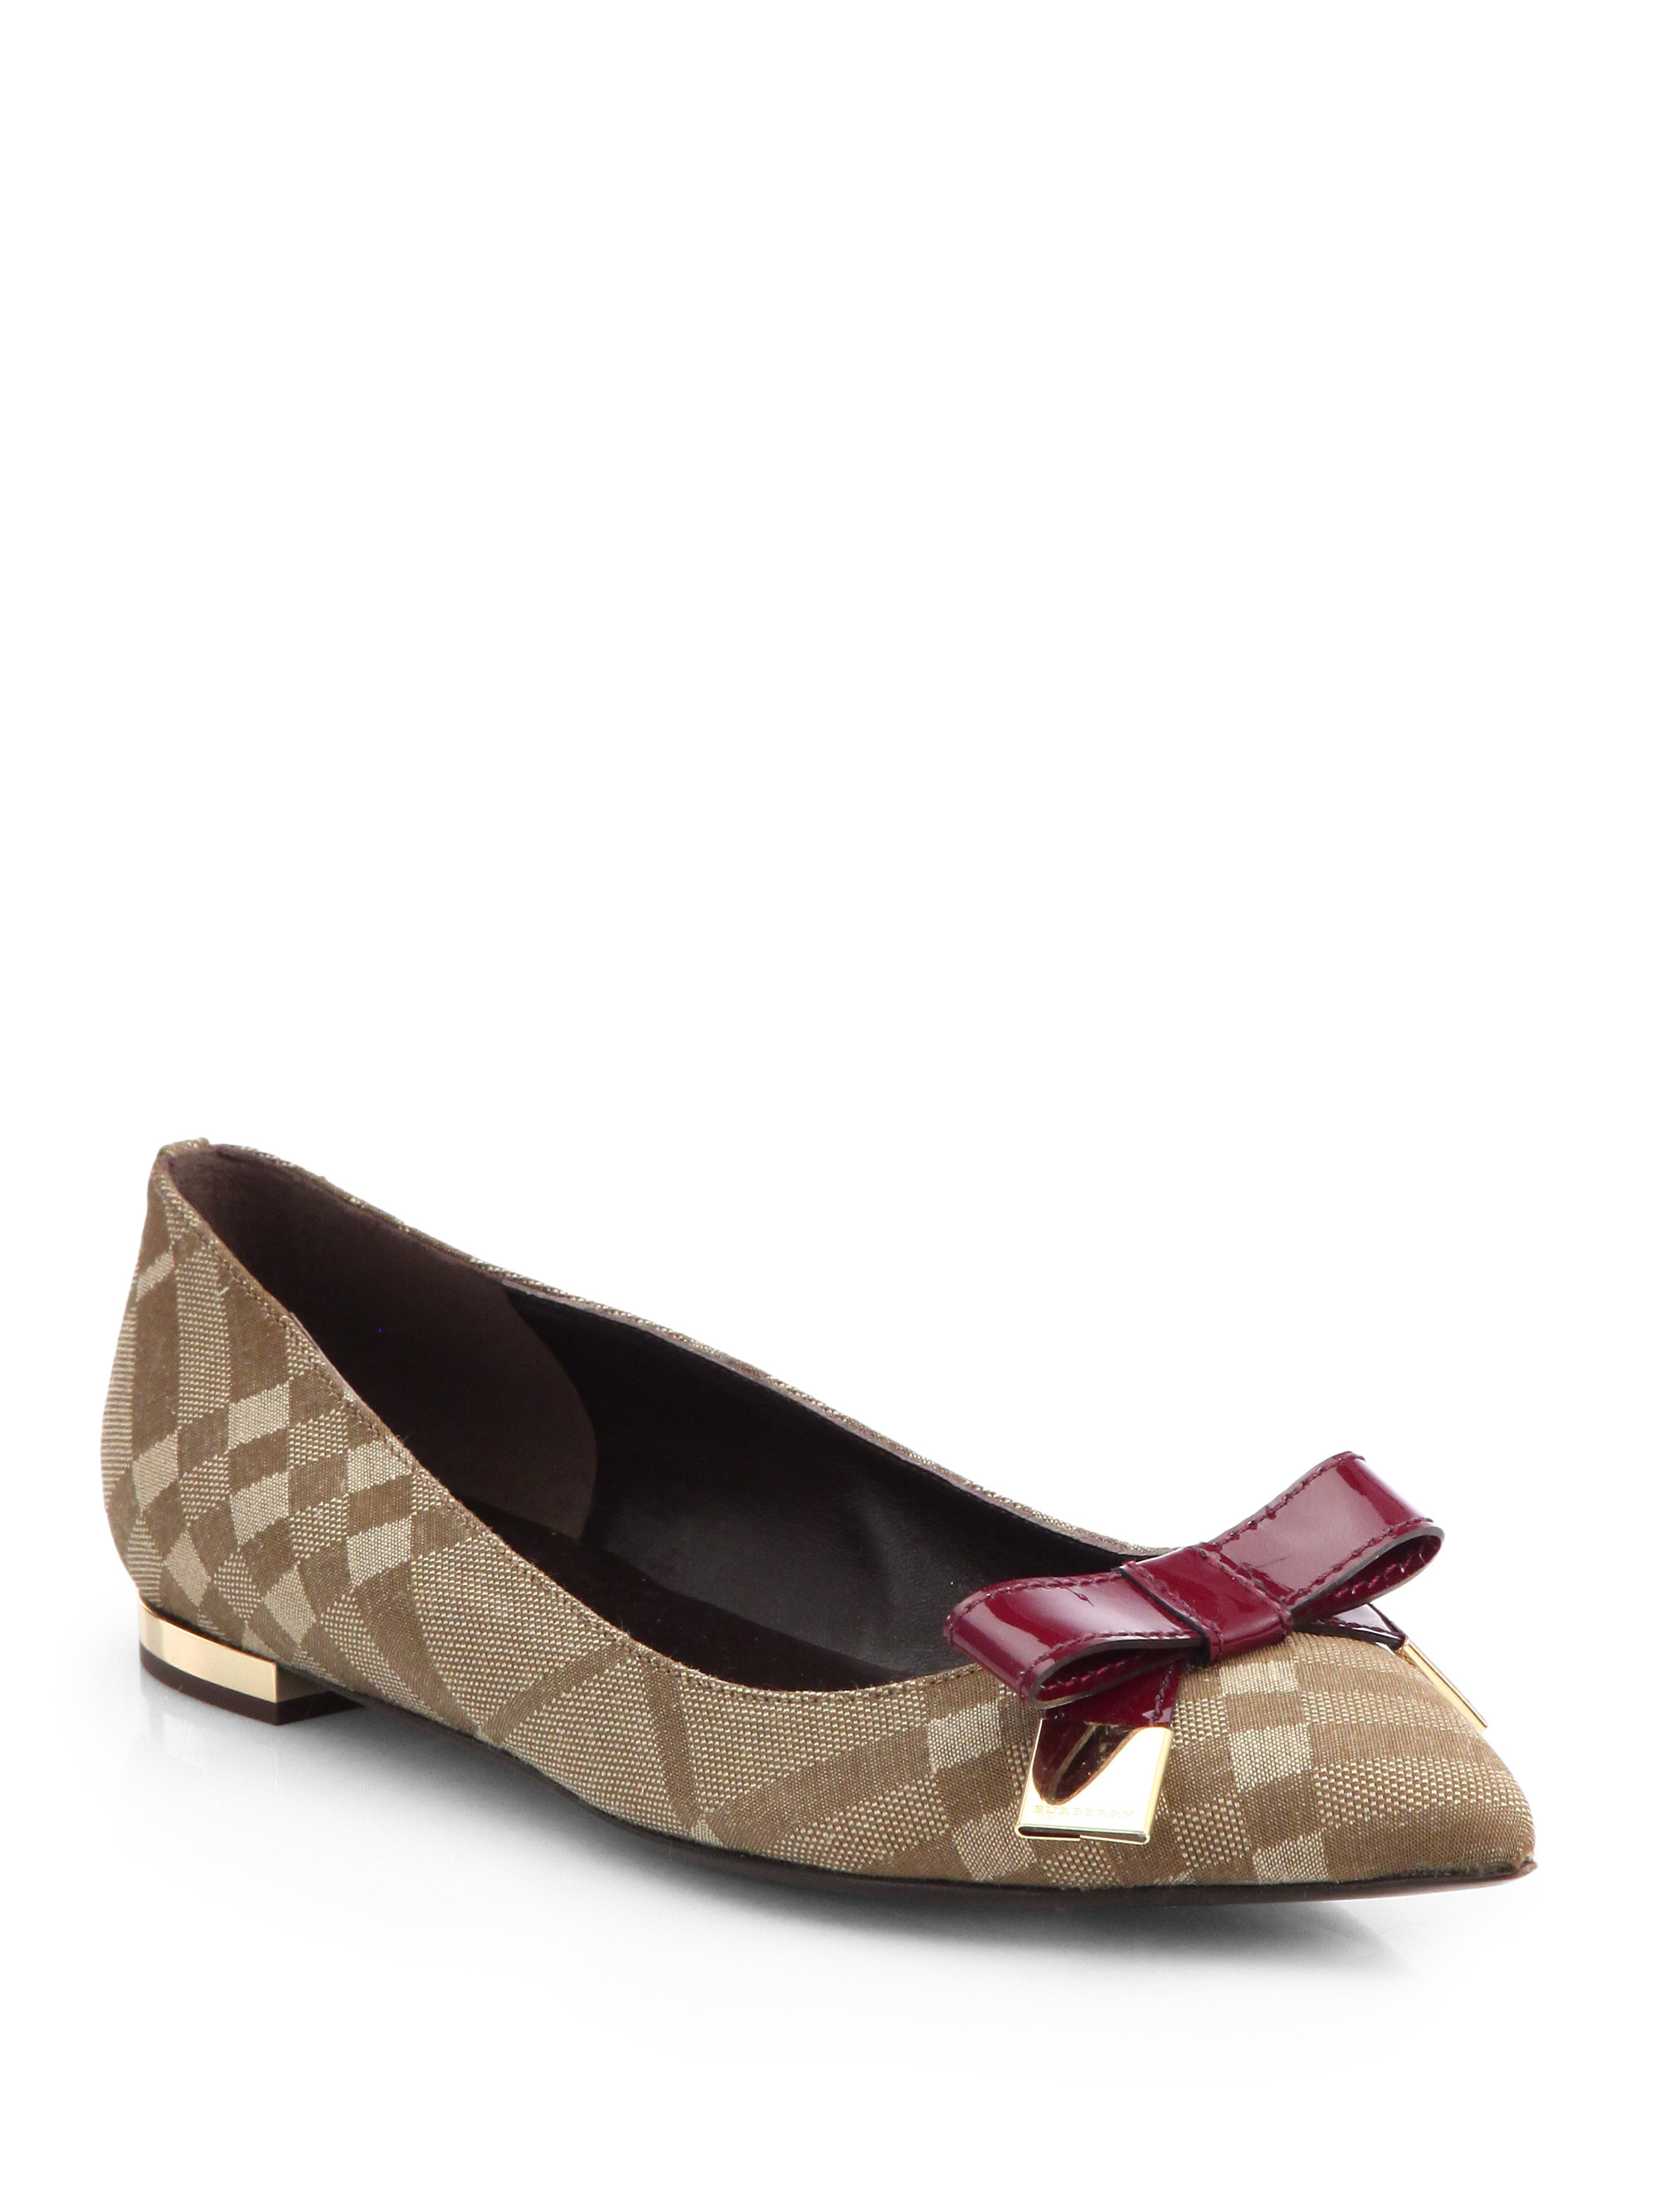 burberry syon check canvas patent leather ballet flats in